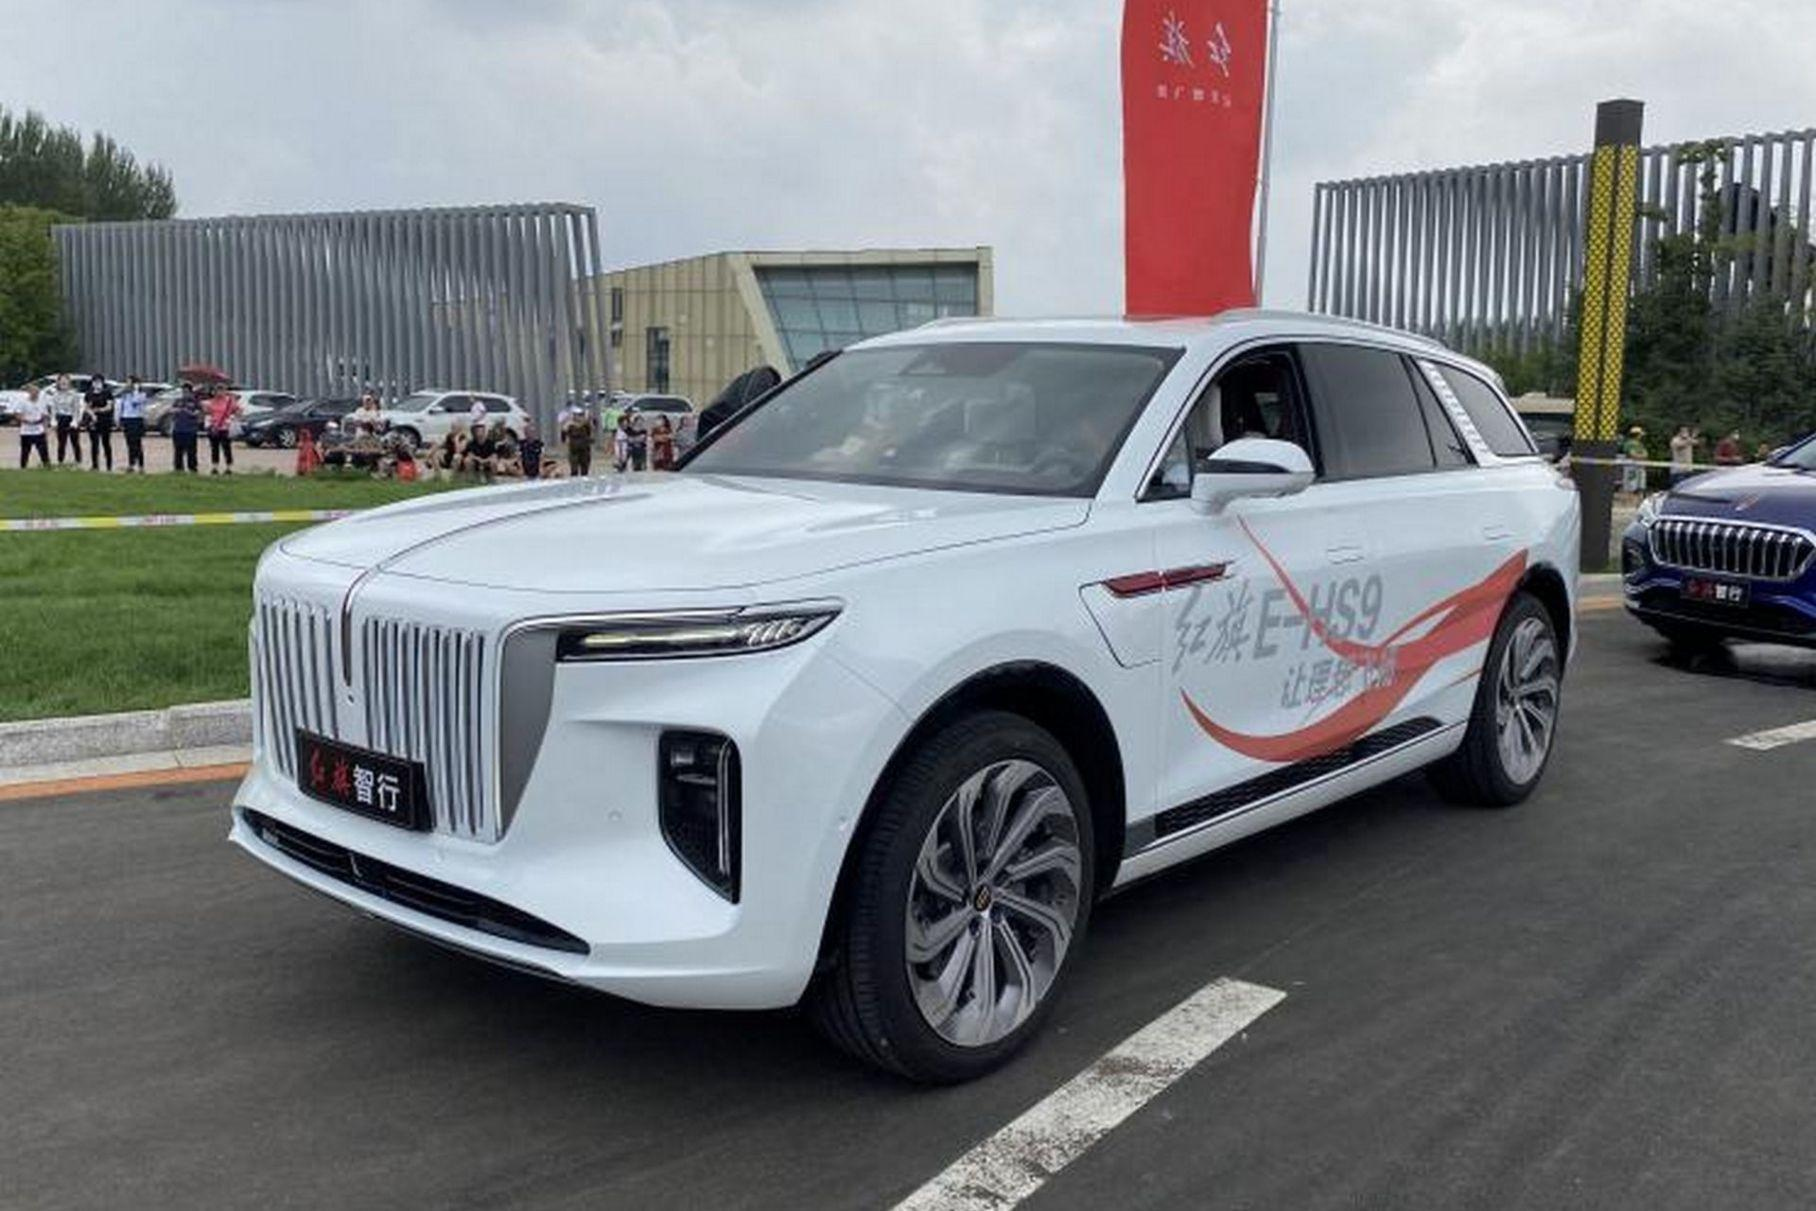 The all-electric Hongqi E-HS9 has made its first appearance on city roads in China several days after its official reveal.